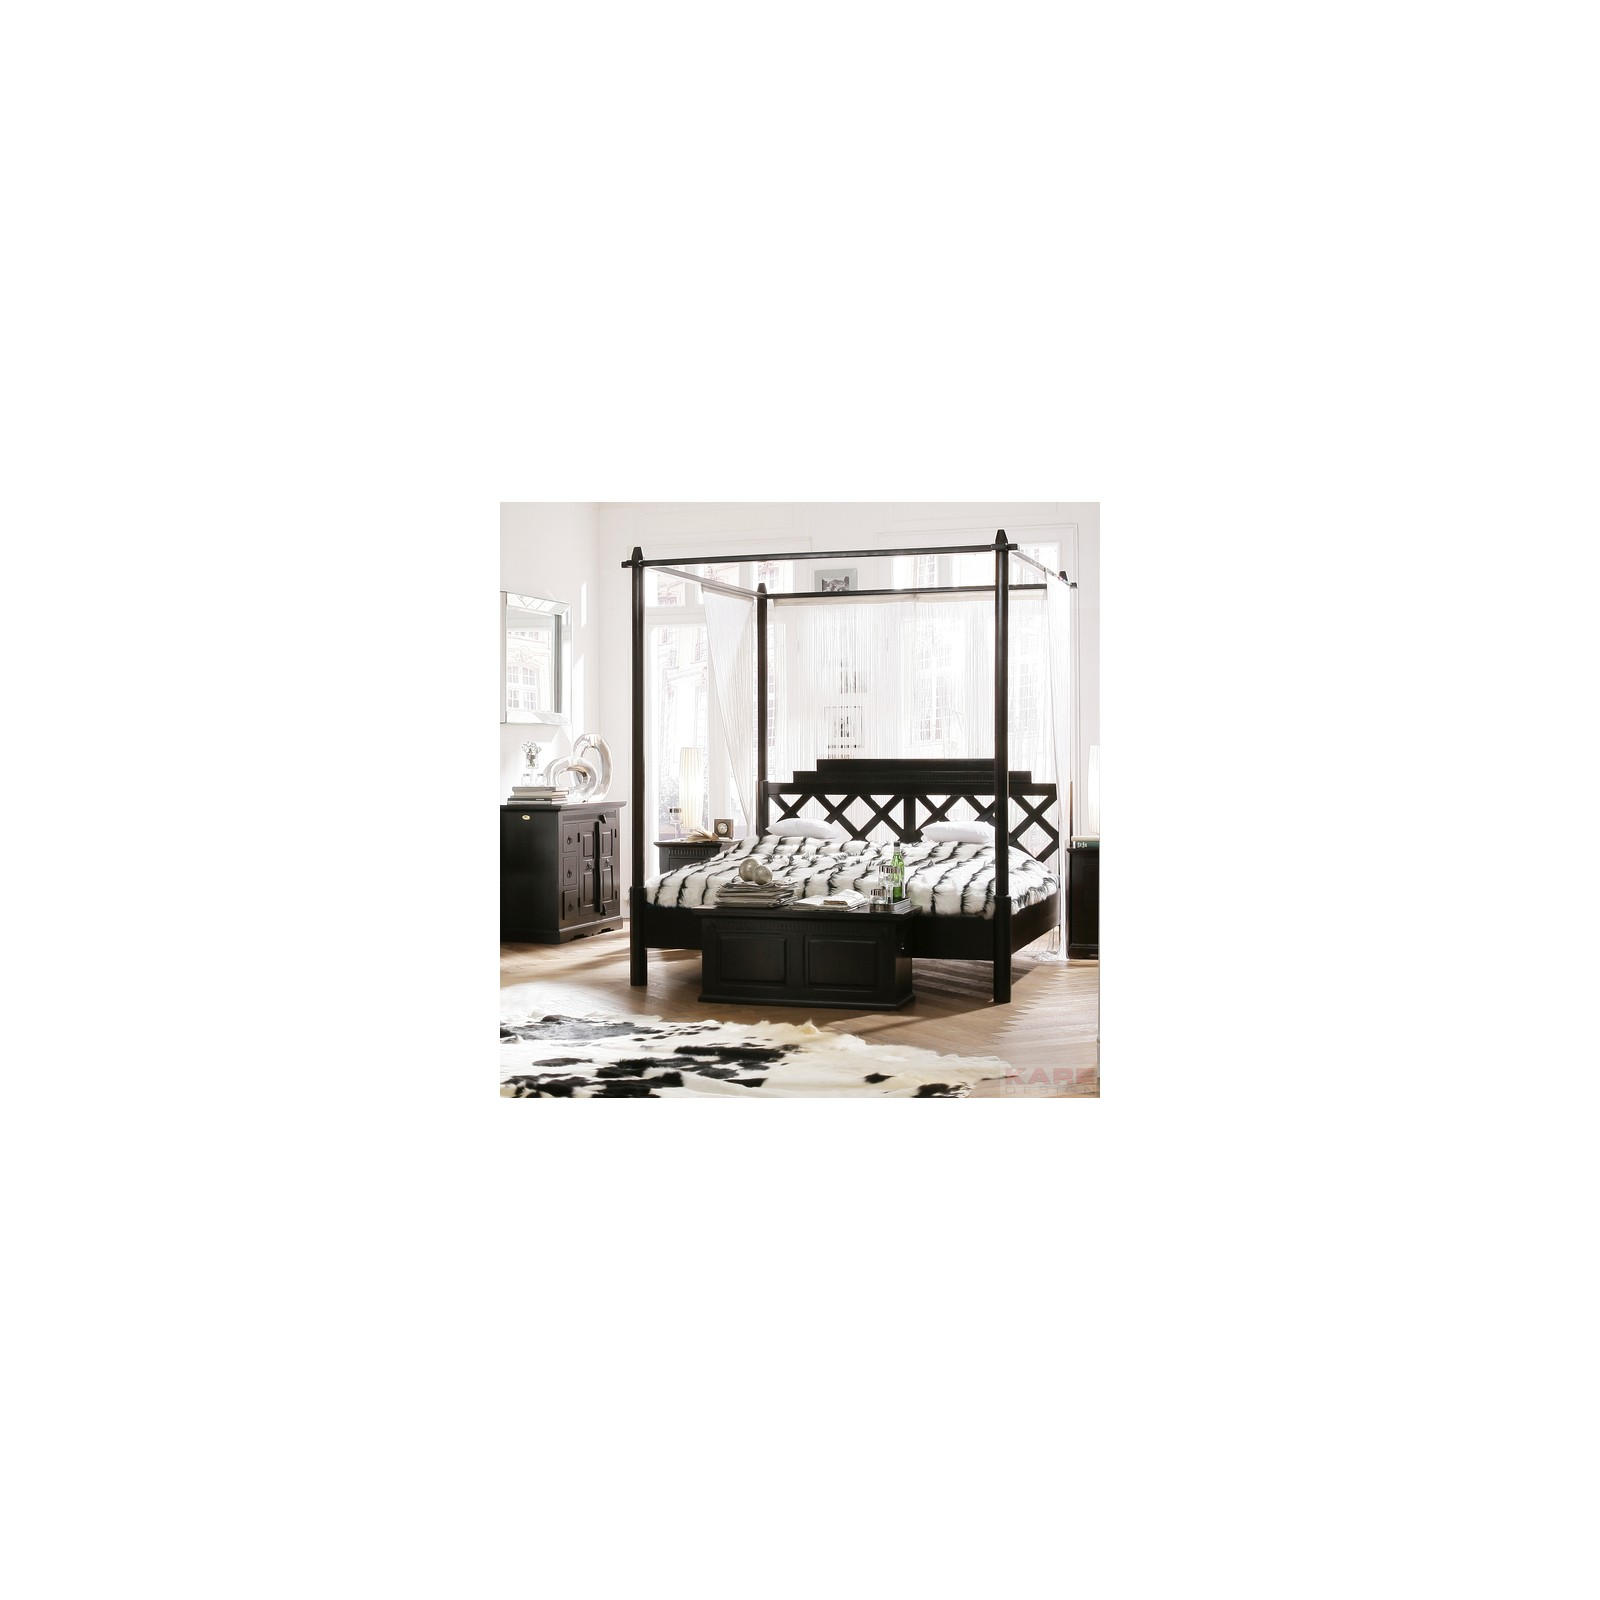 lit 2 personnes pas cher avec sommier et matelas maison. Black Bedroom Furniture Sets. Home Design Ideas